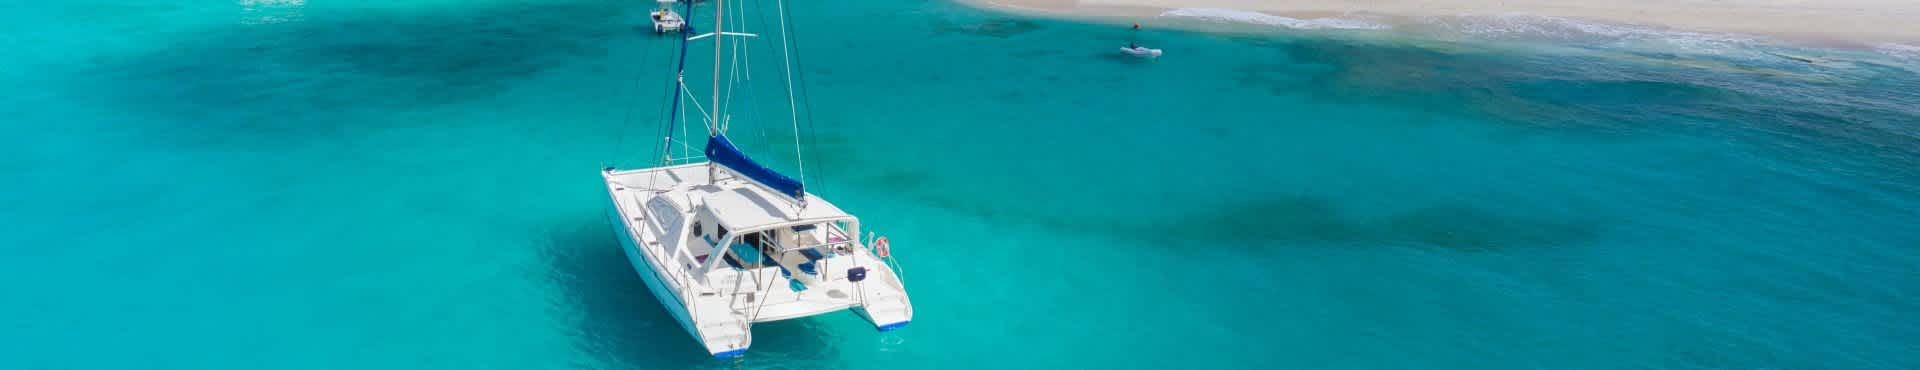 Shine Lawyers | Catamaran sailing around island | Shine Lawyers